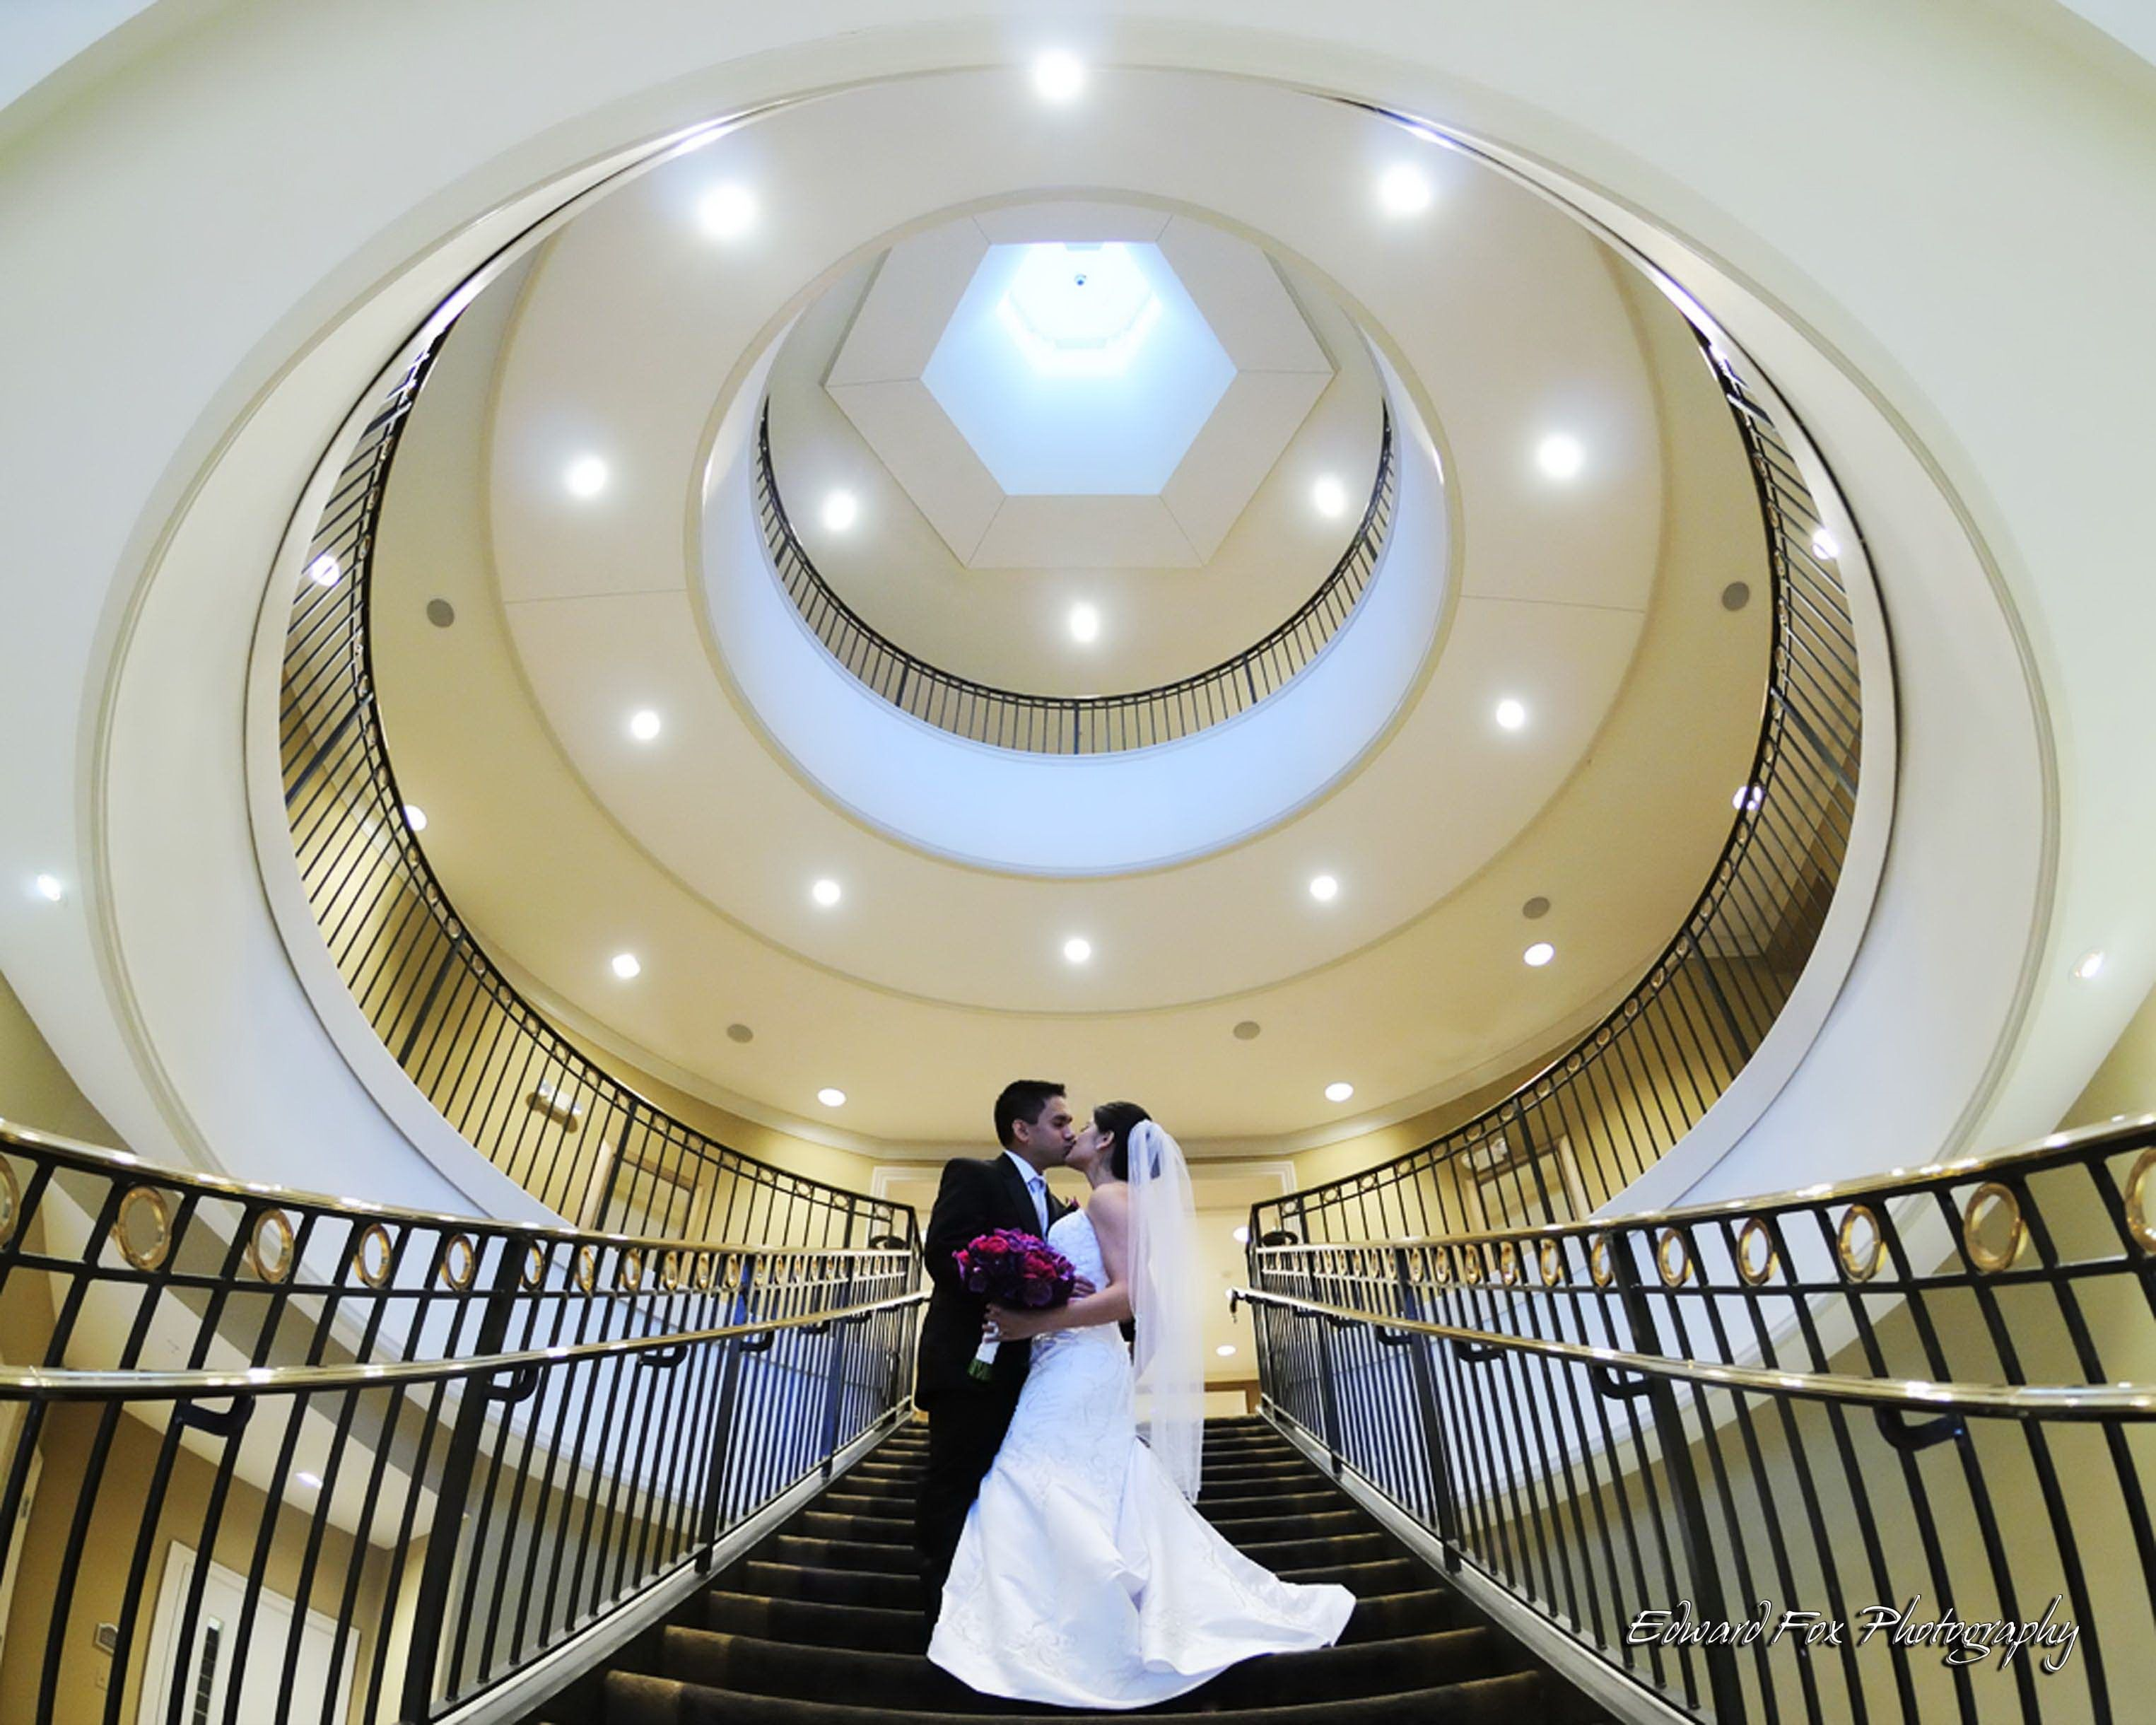 The Glen Club Glenview Illinois Is One Of Premier Wedding Venues In Chicago Location Call Today To Inquire About This Fantastic